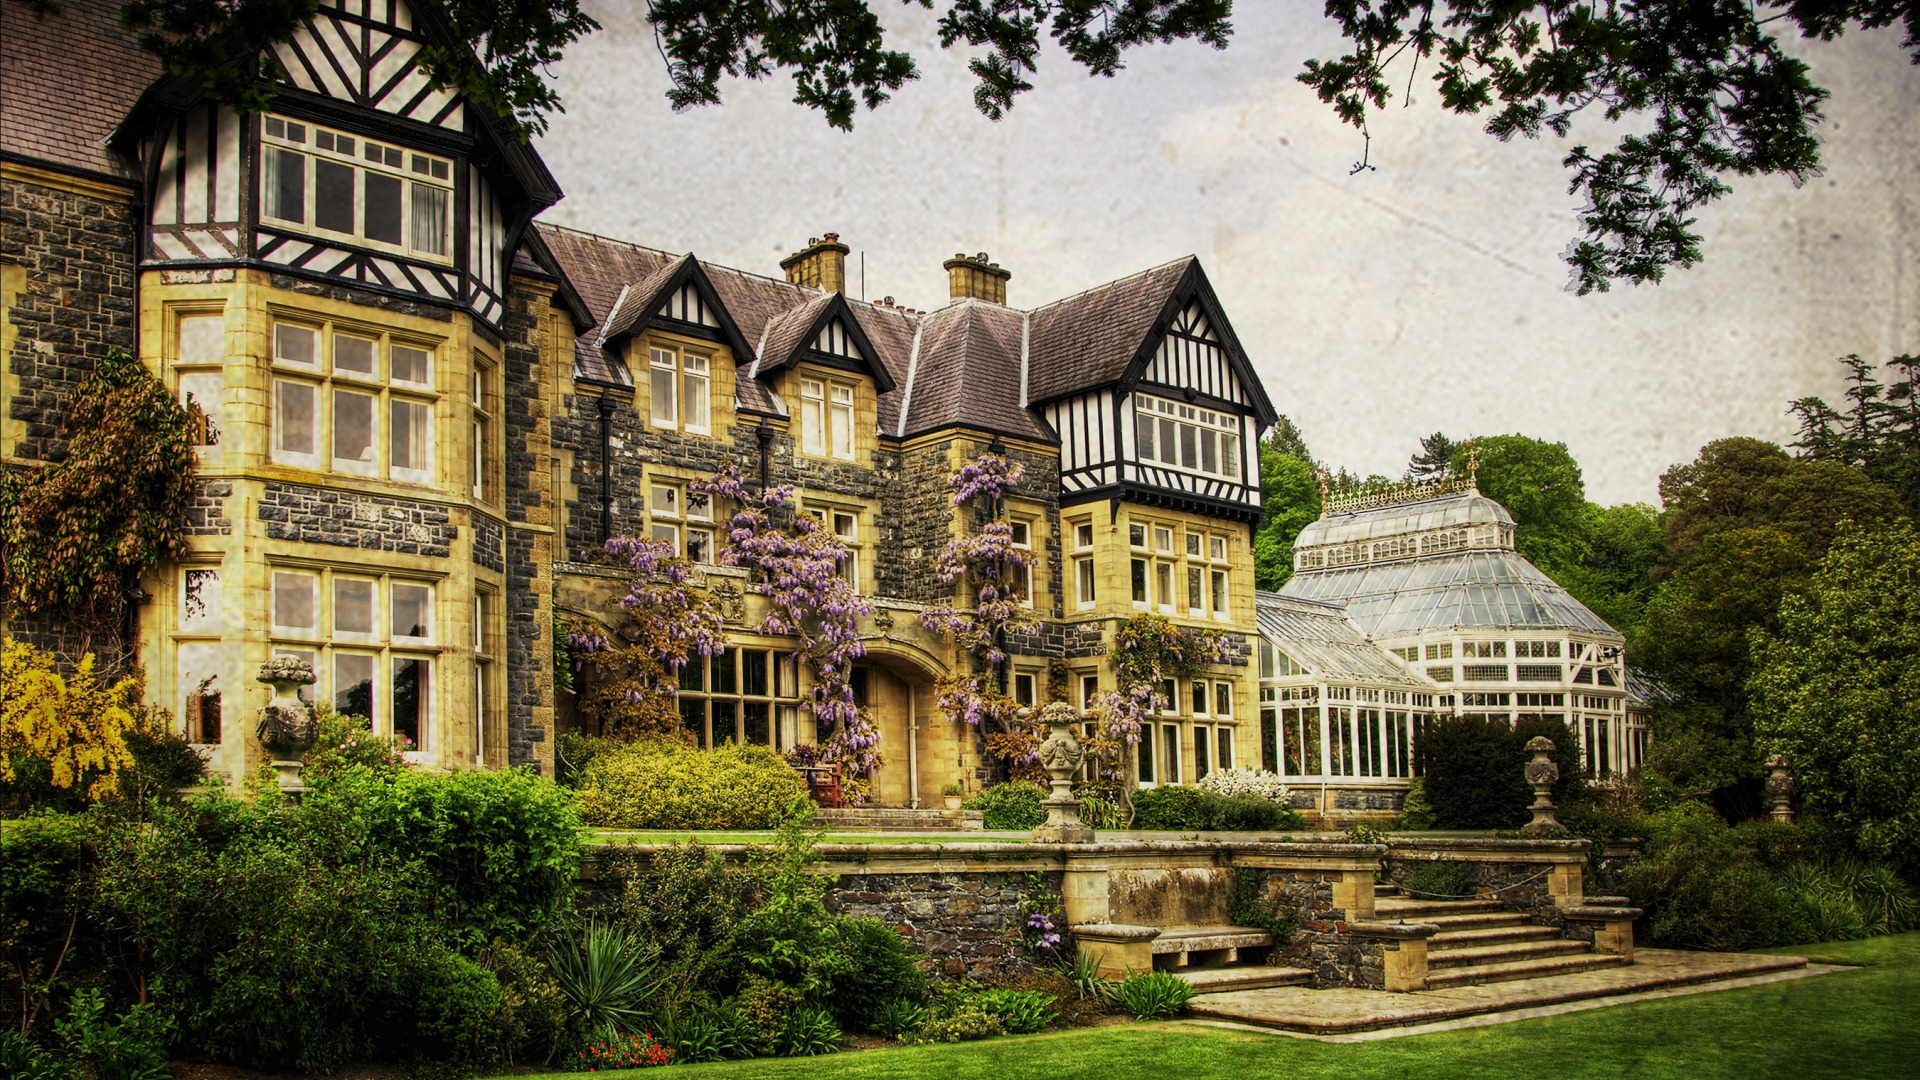 Download-Wales-garden-treatment-trees-the-bushes-mansion-UK-house-Bodnant-Gardens-wallpaper-wp3404990